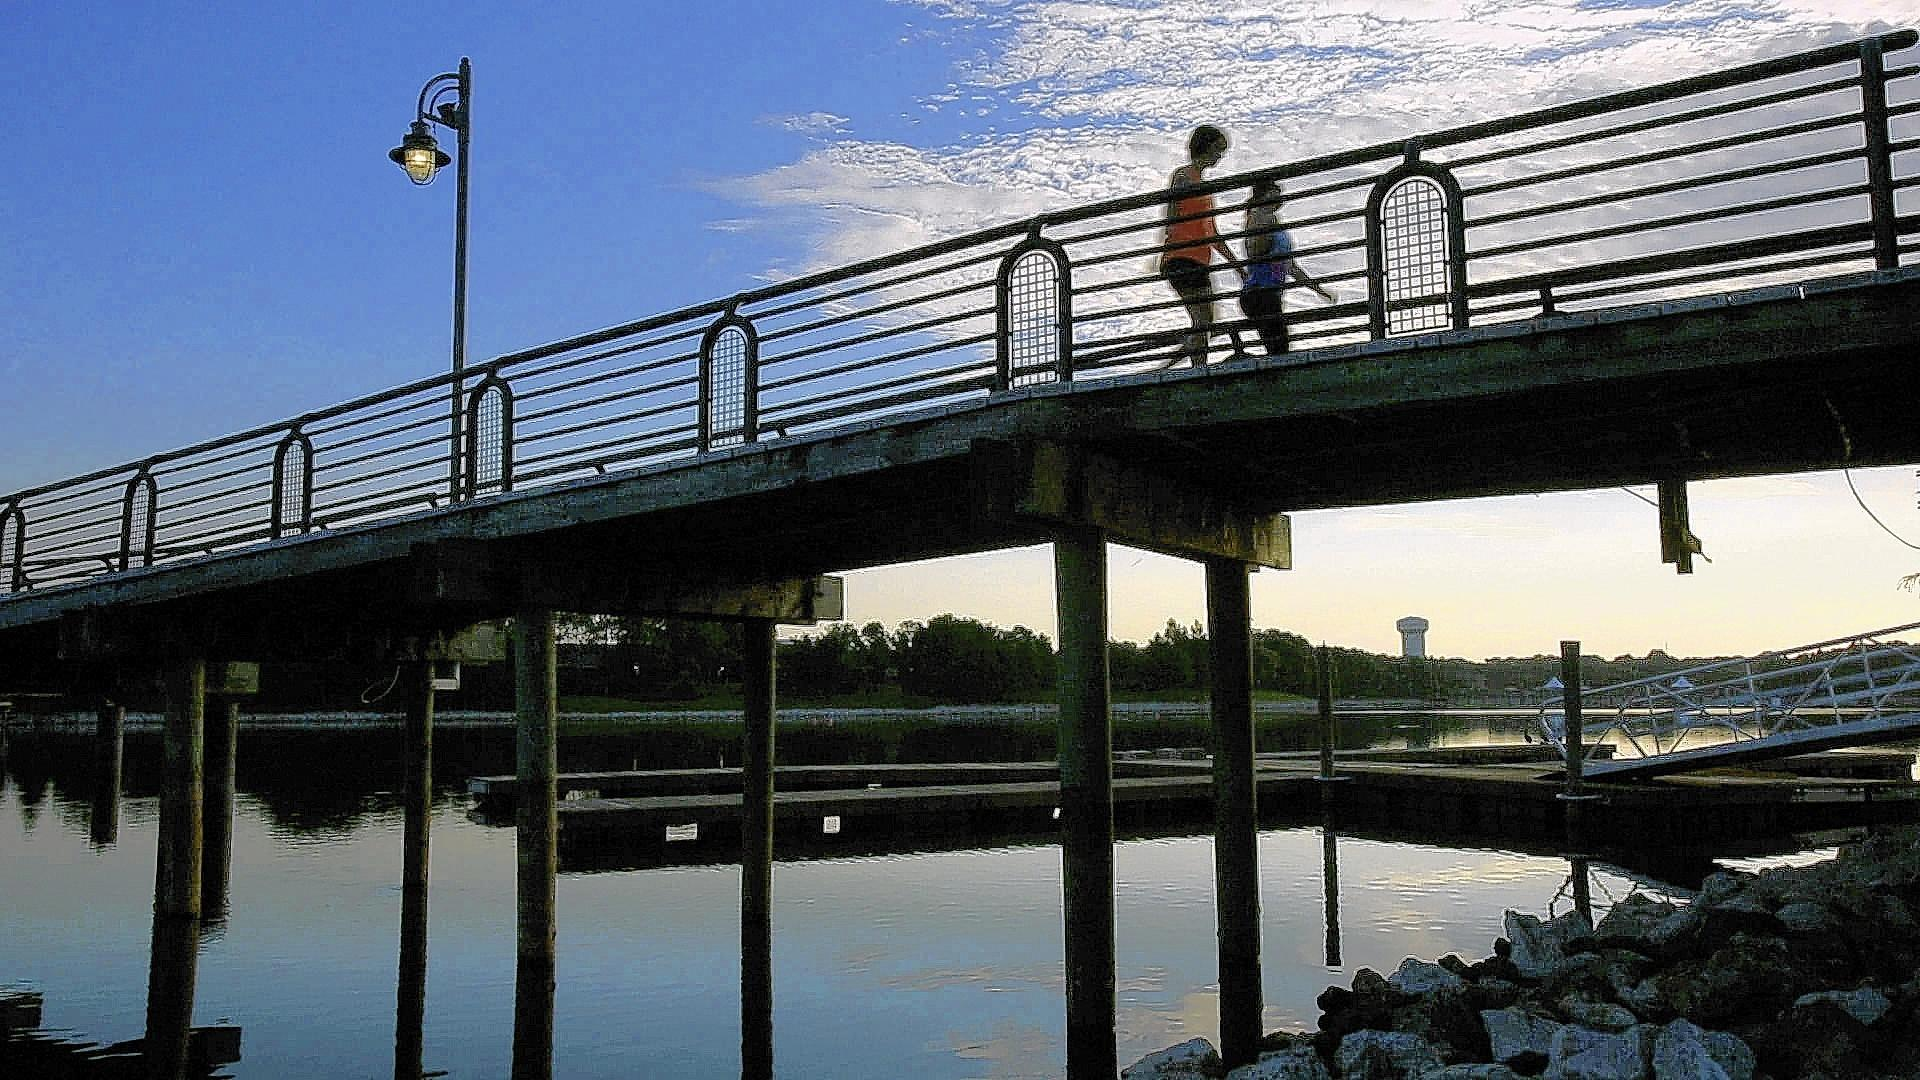 Altamonte Springs will kick off a $3 million renovation project of Cranes Roost park. Over the next 18 months, the work will replace the boardwalks, rebuild the floating stage and other improvements.